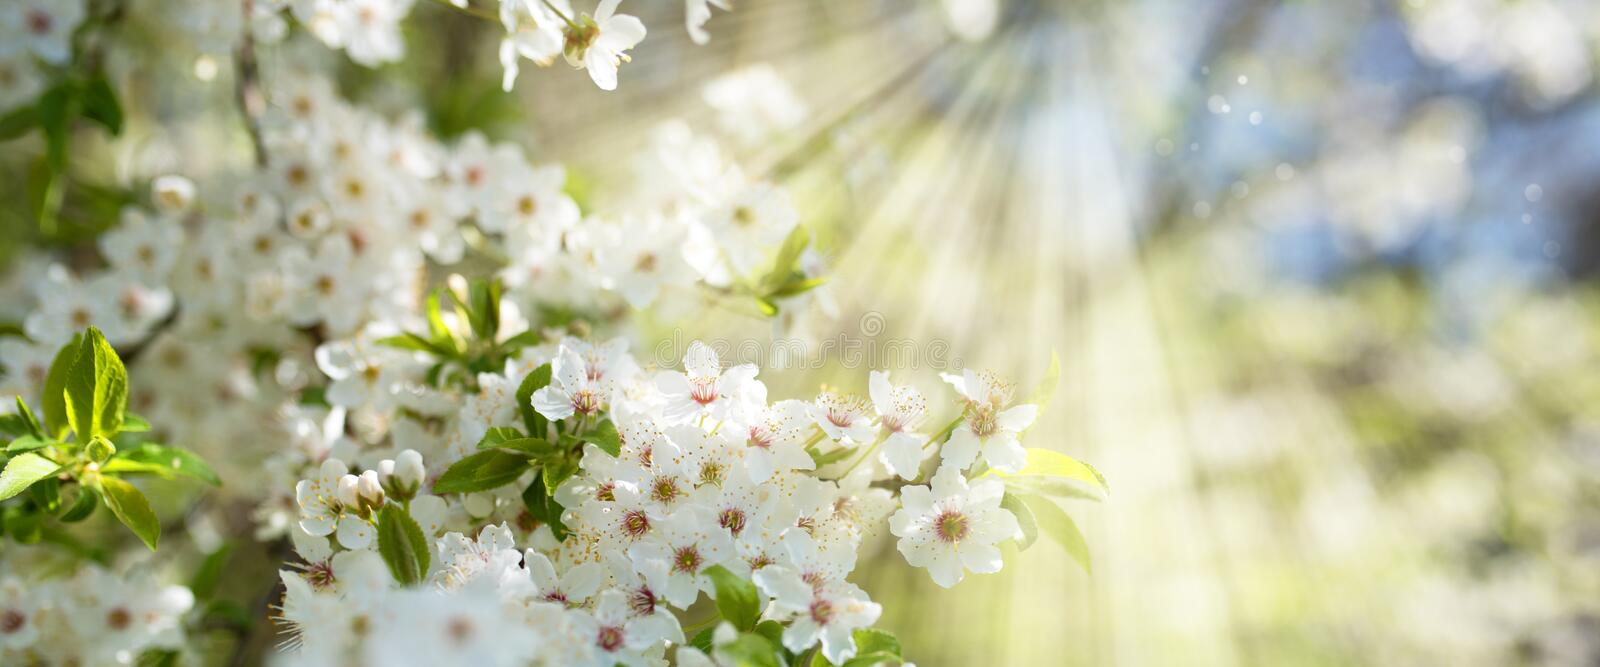 Download White Blossoms In Spring Sun Stock Image - Image of health, concept: 89880825